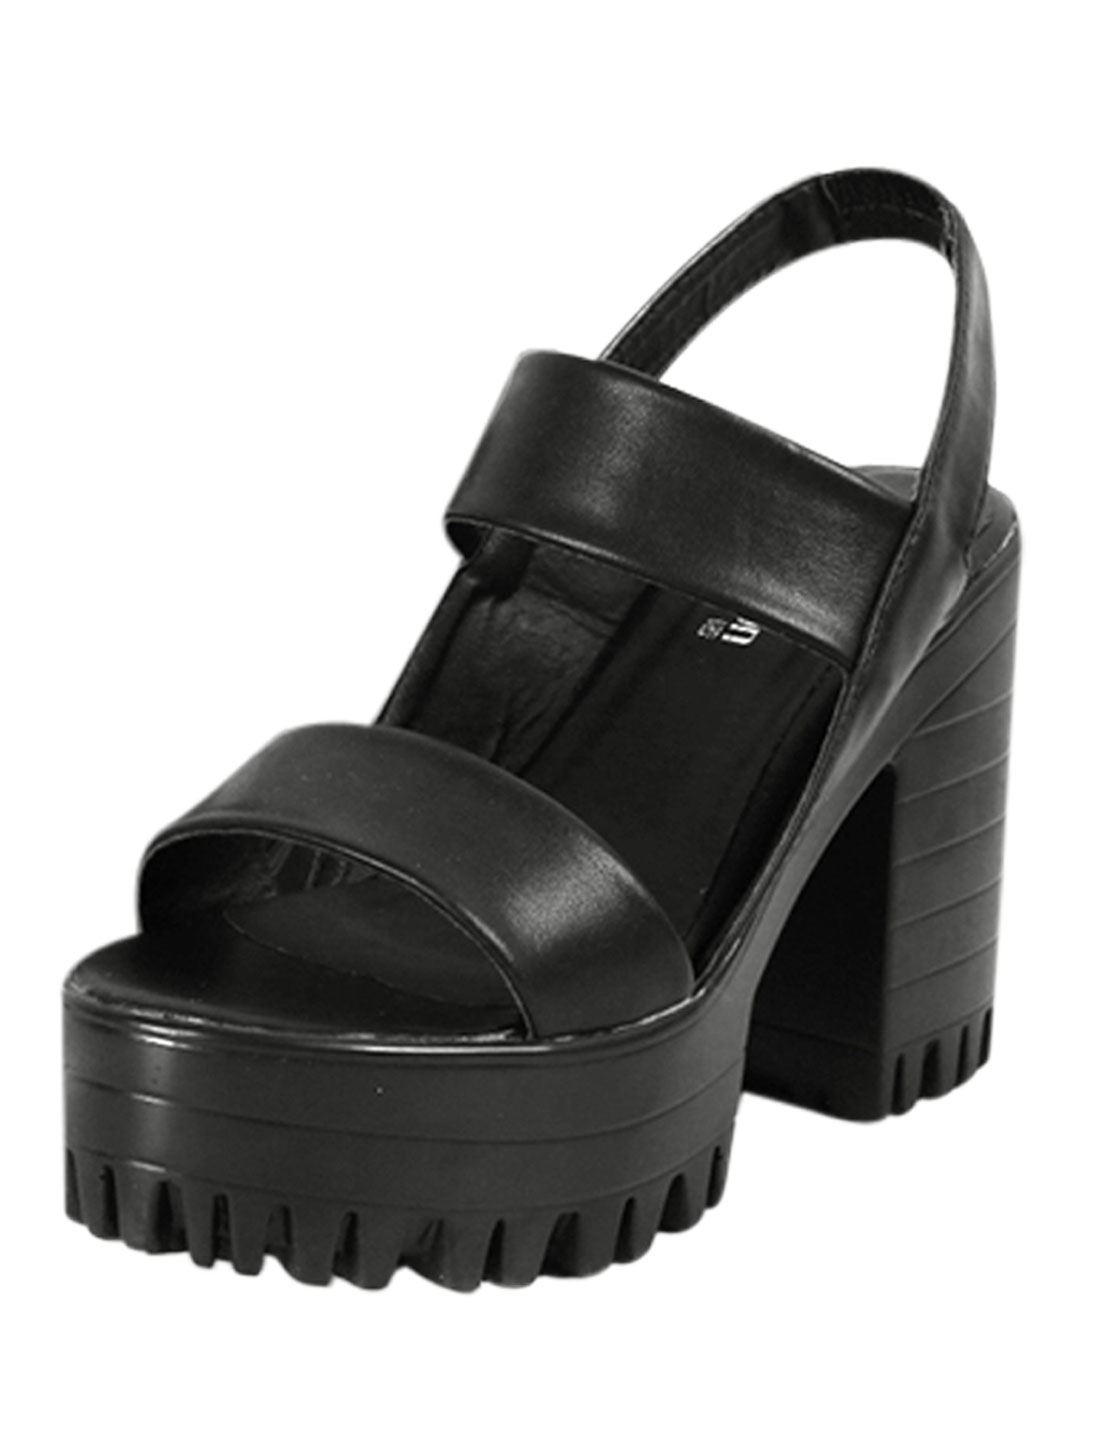 Woman Ankle Strap Lug Sole Chunky Heels Outdoors Sandals Black US 7.5